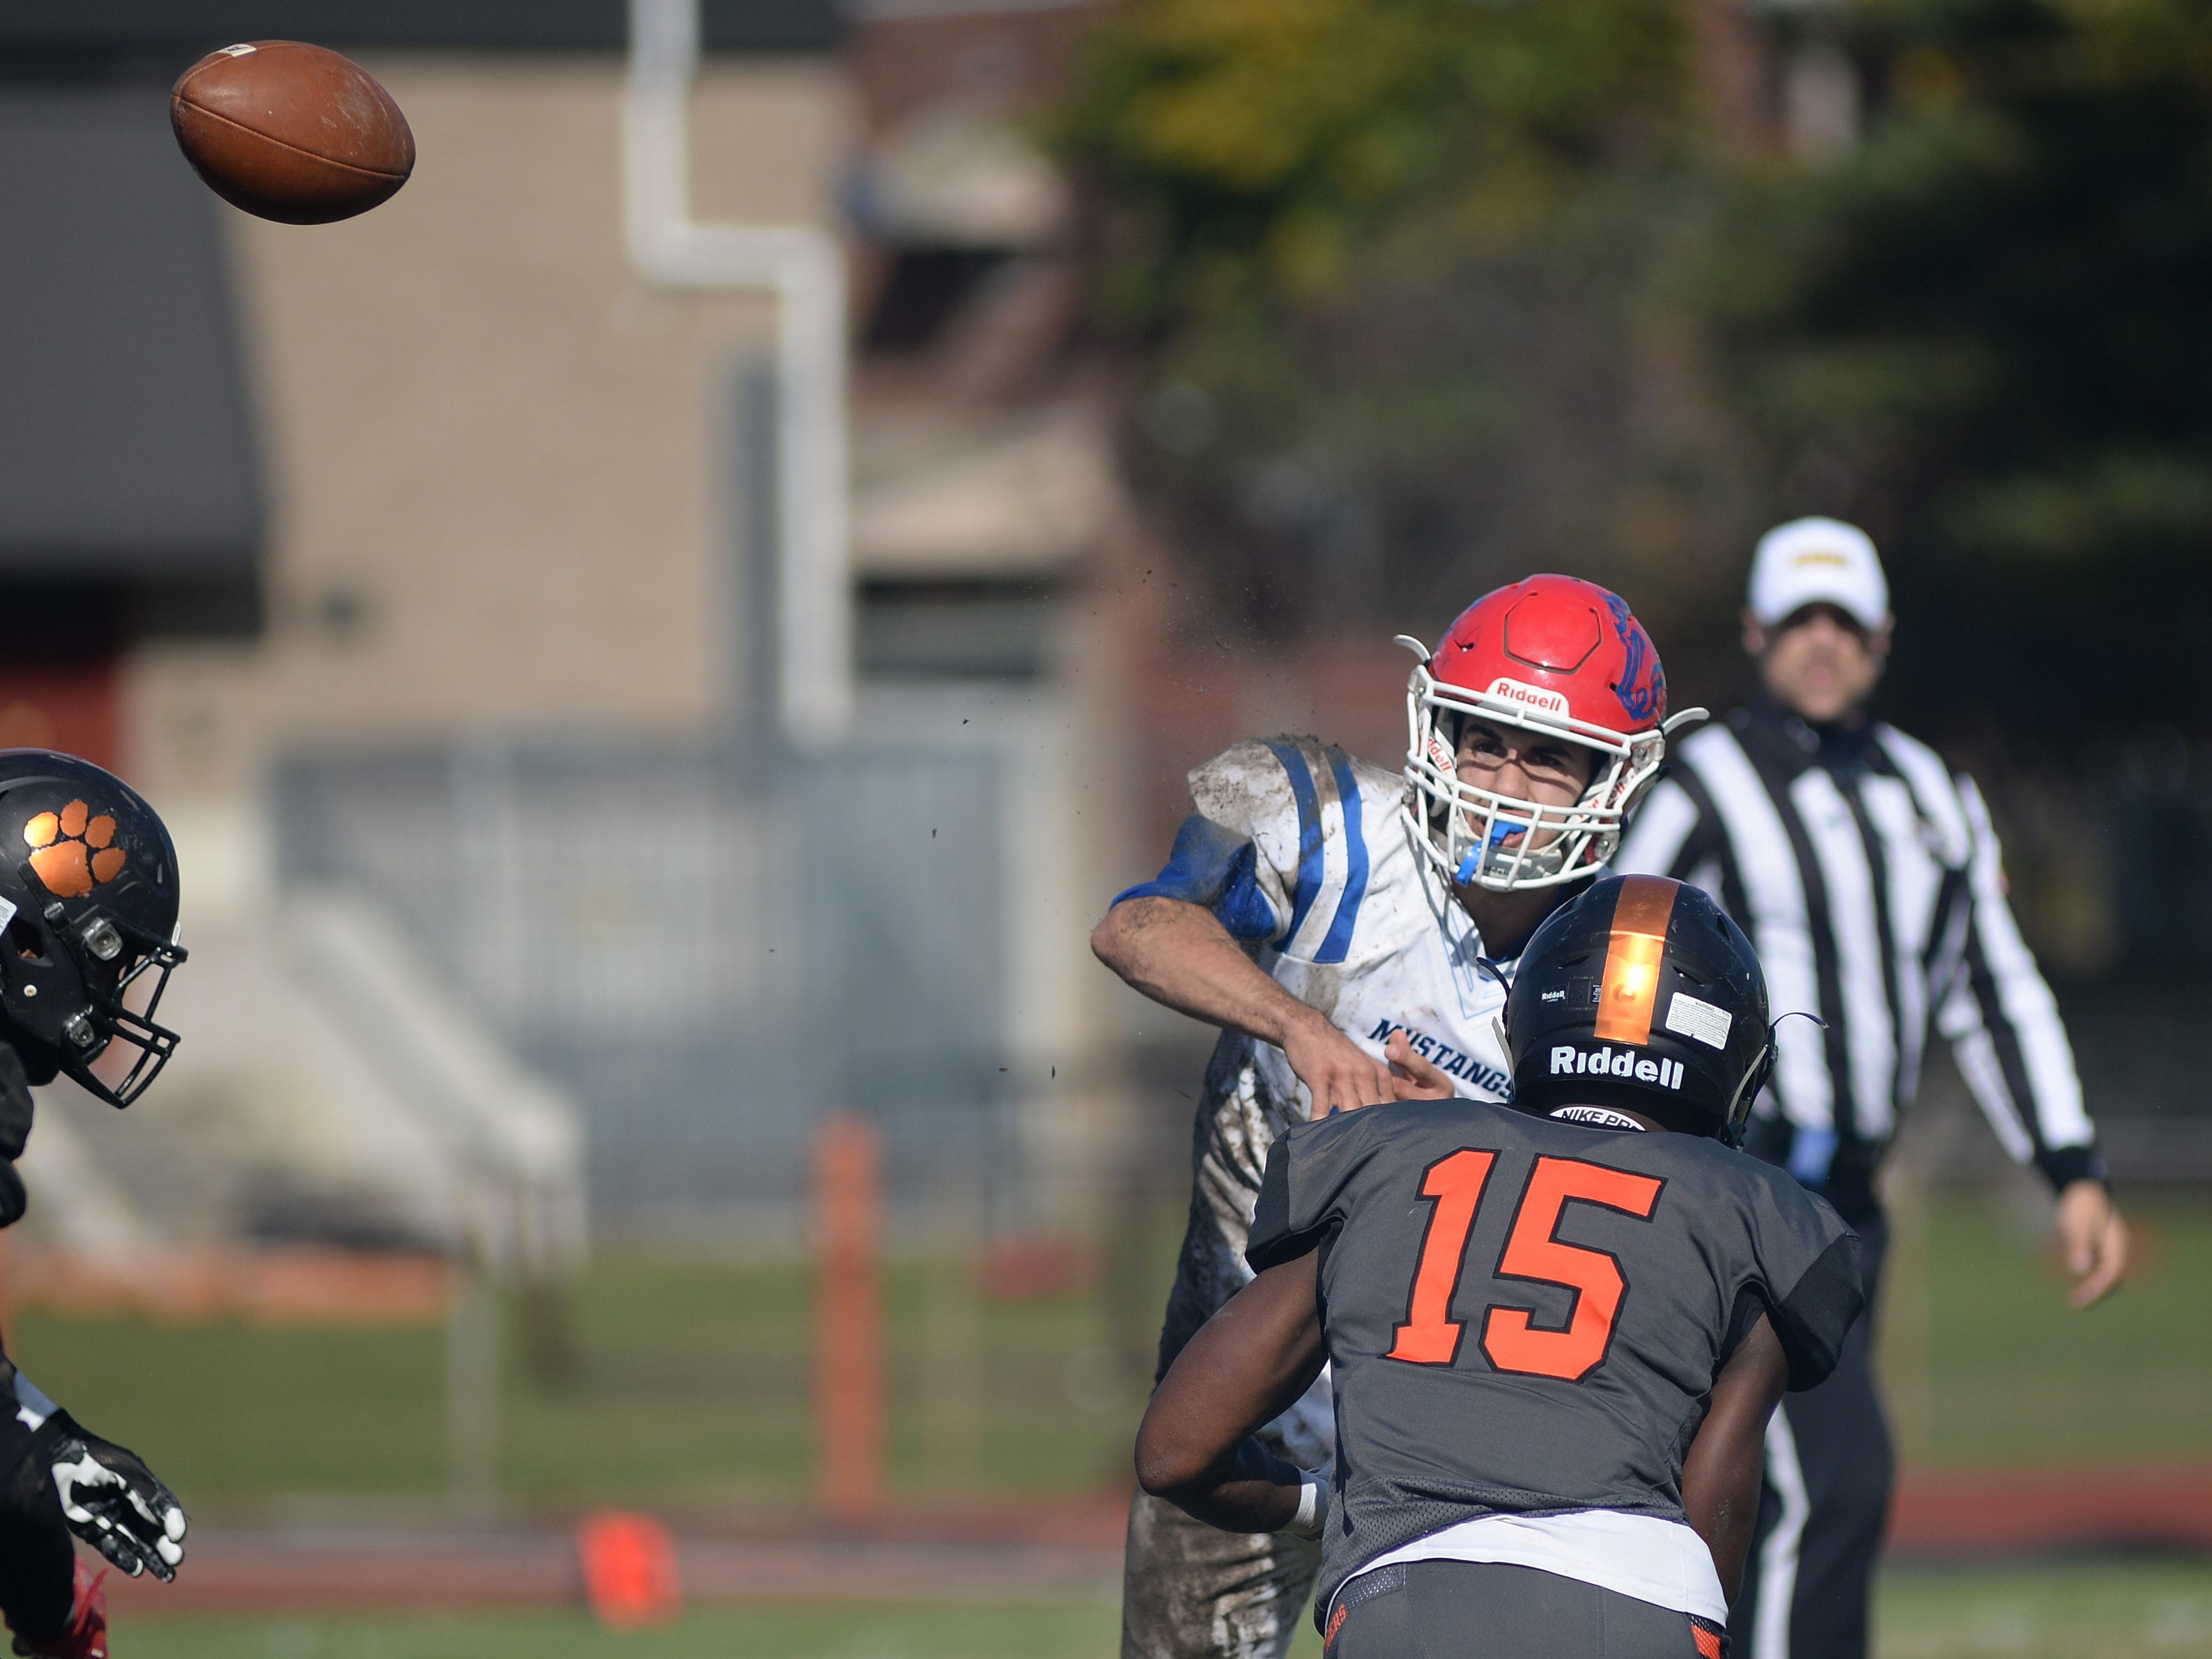 Triton's Geff Giancaterino throws a pass during Saturday's South Jersey Group 3 first round game against Woodrow Wilson, at Woodrow Wilson High School, Nov. 3, 2018.